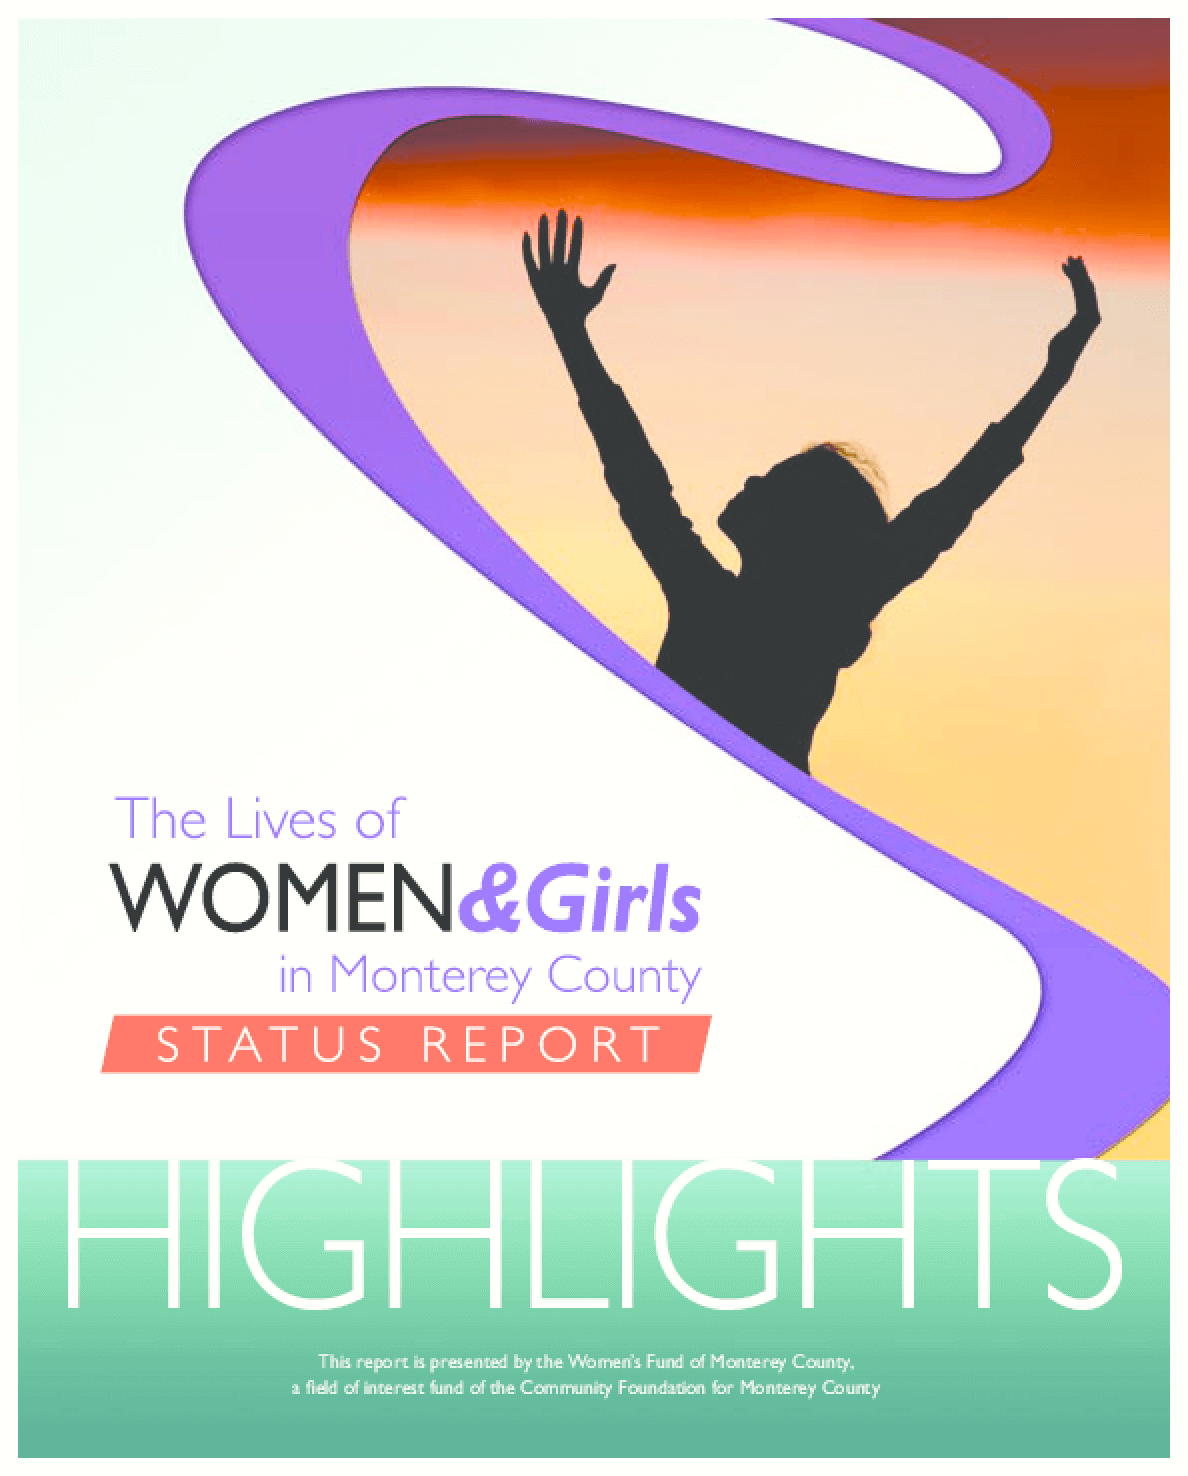 The Lives of Women and Girls in Monterey County Status Report